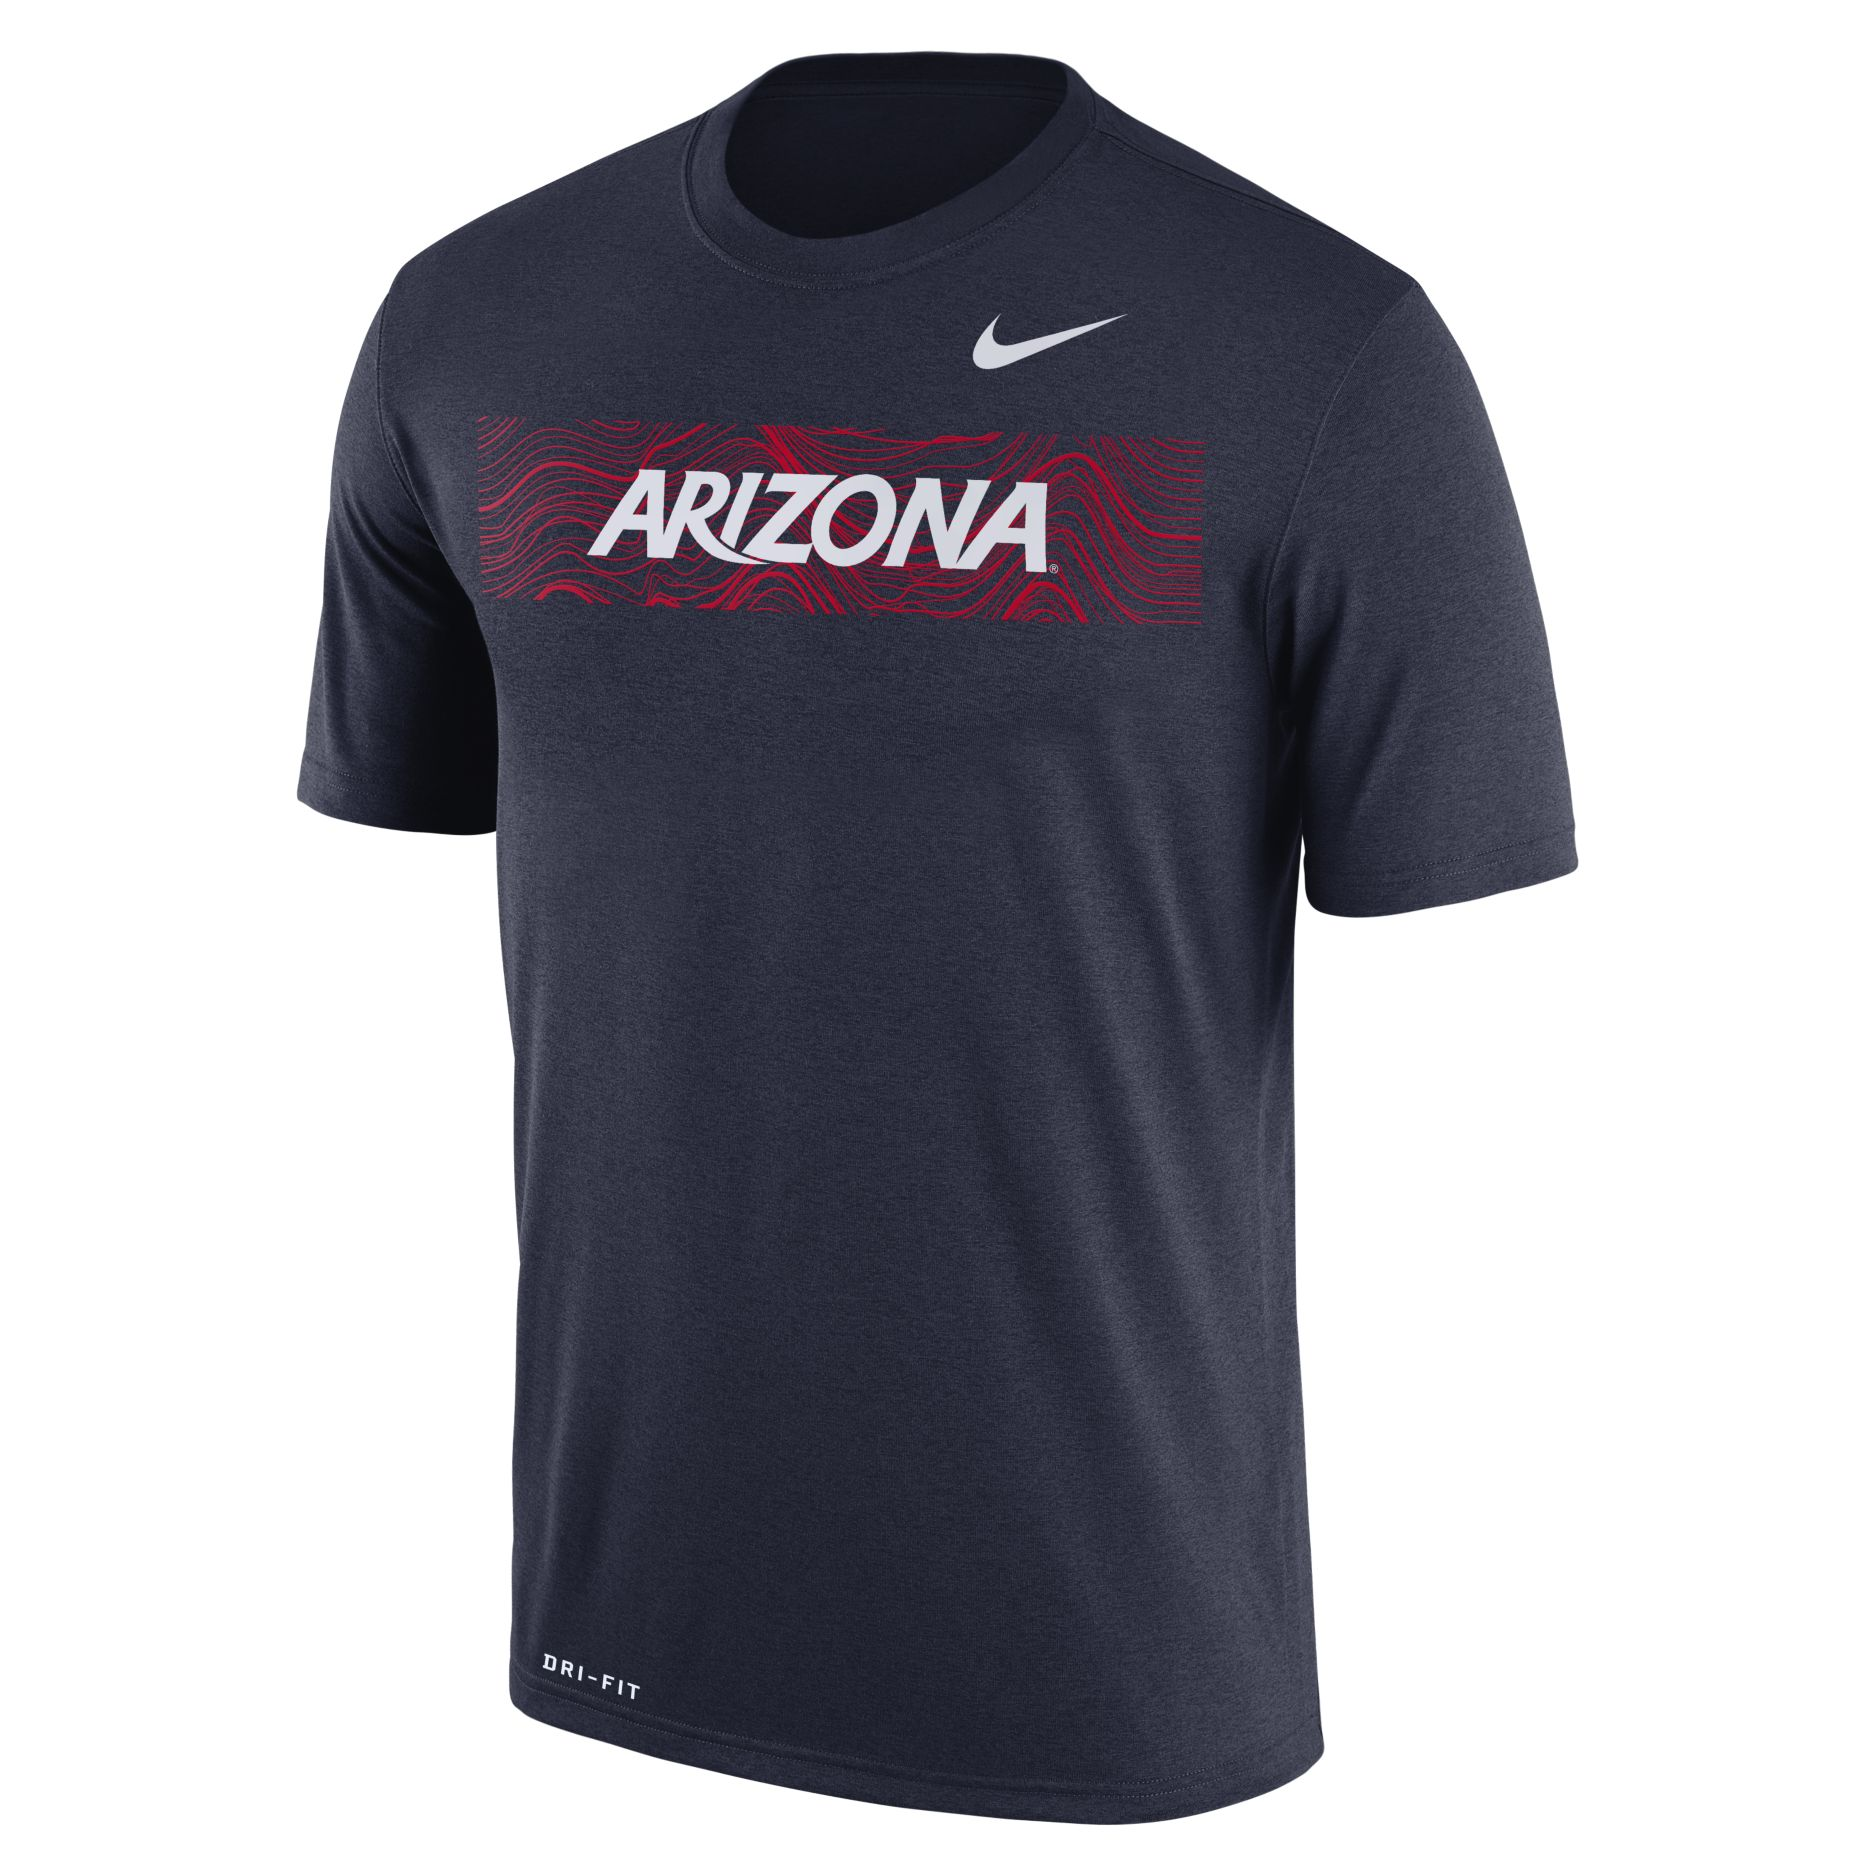 Cover Image For Nike: Arizona Sideline Legend Football Crew Dri-FIT Tee-Navy